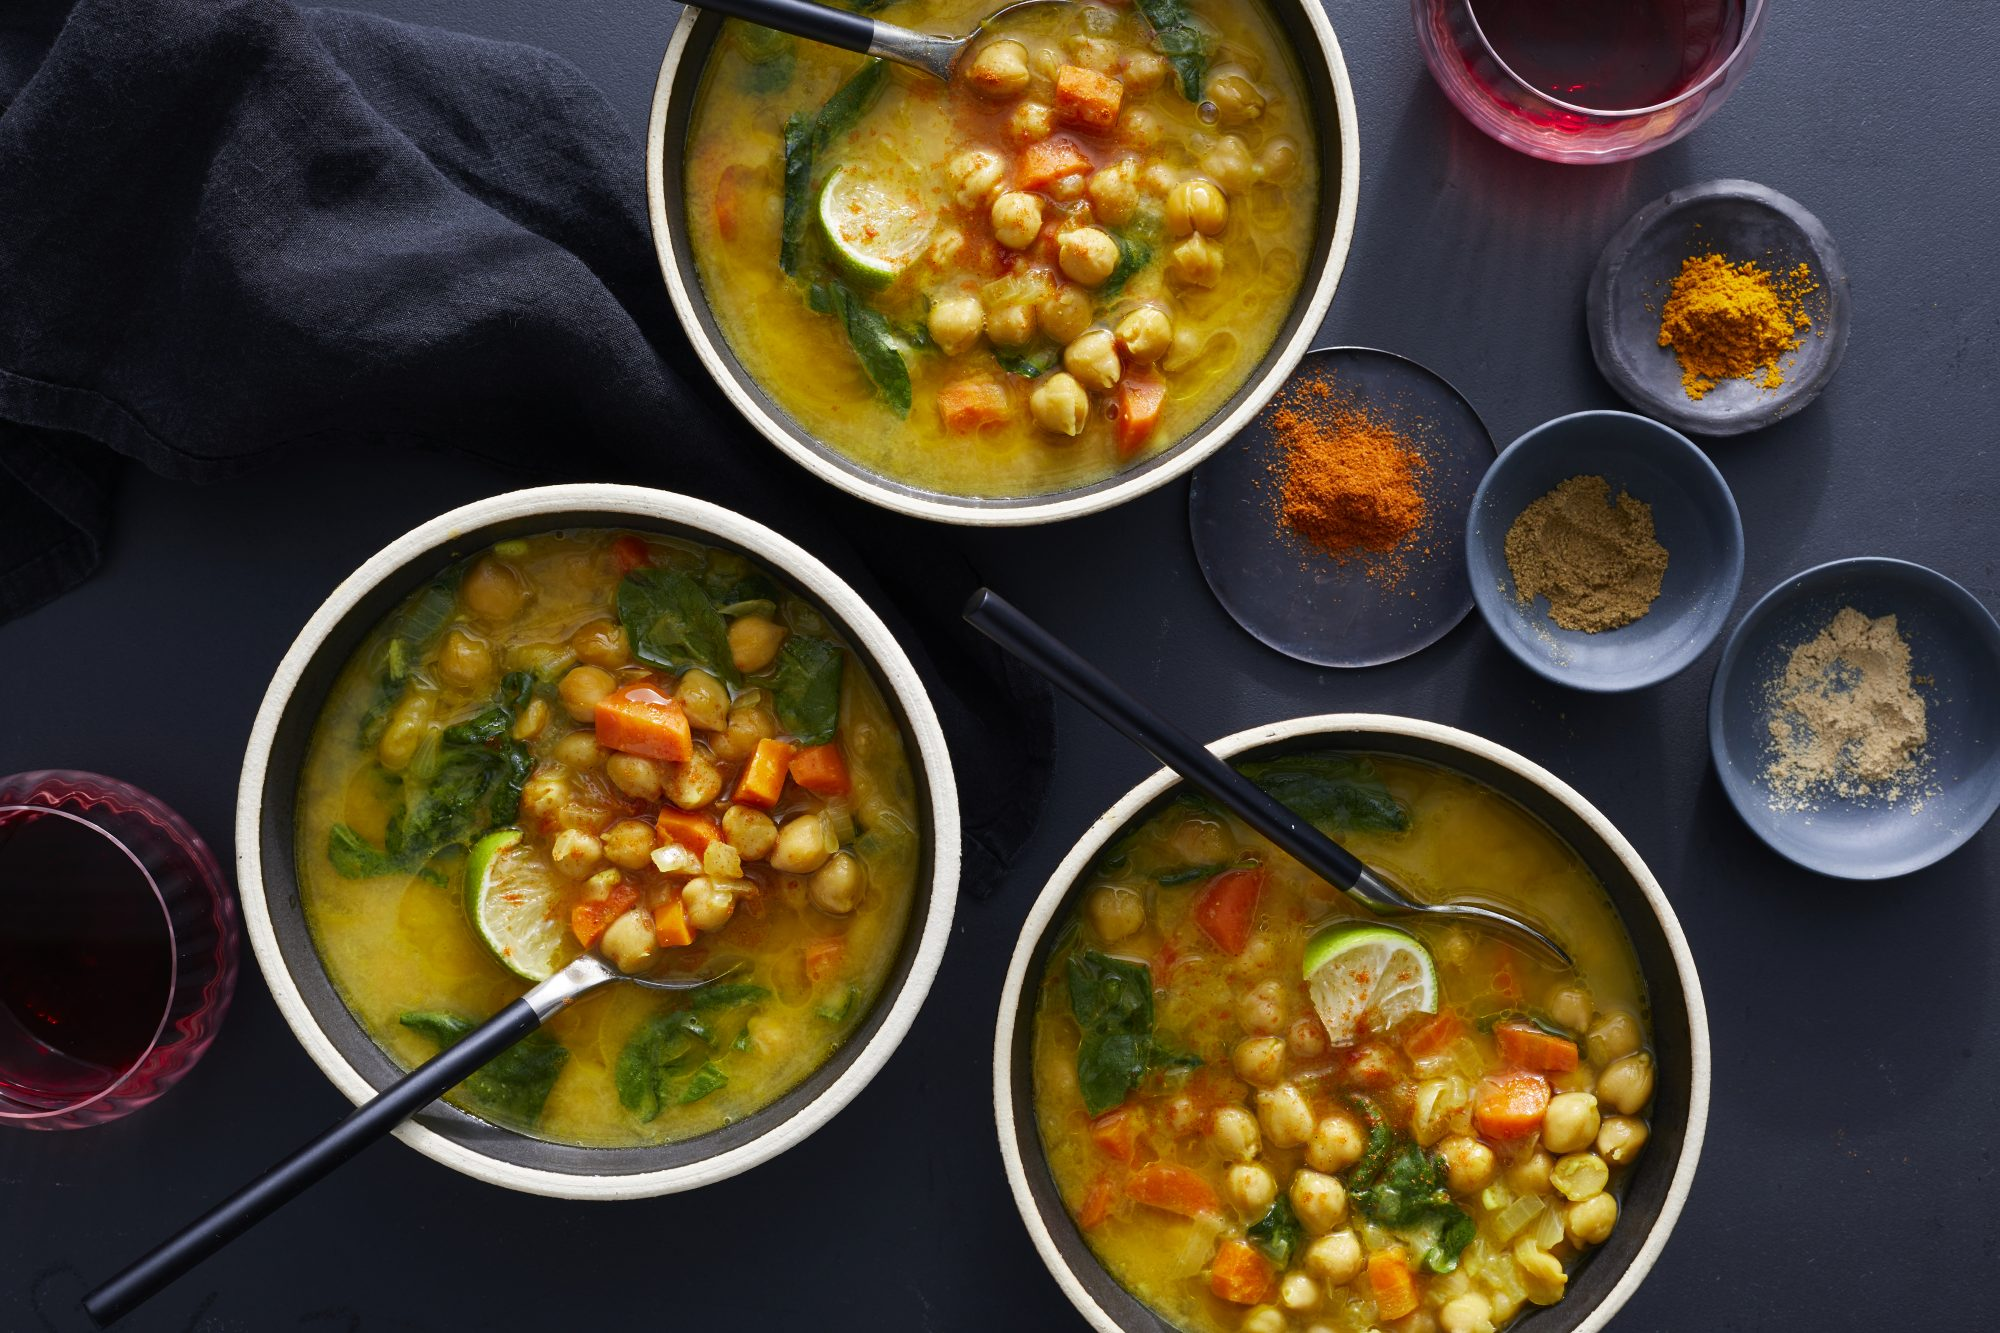 Moroccan Chickpea, Carrot, and Spinach Soup